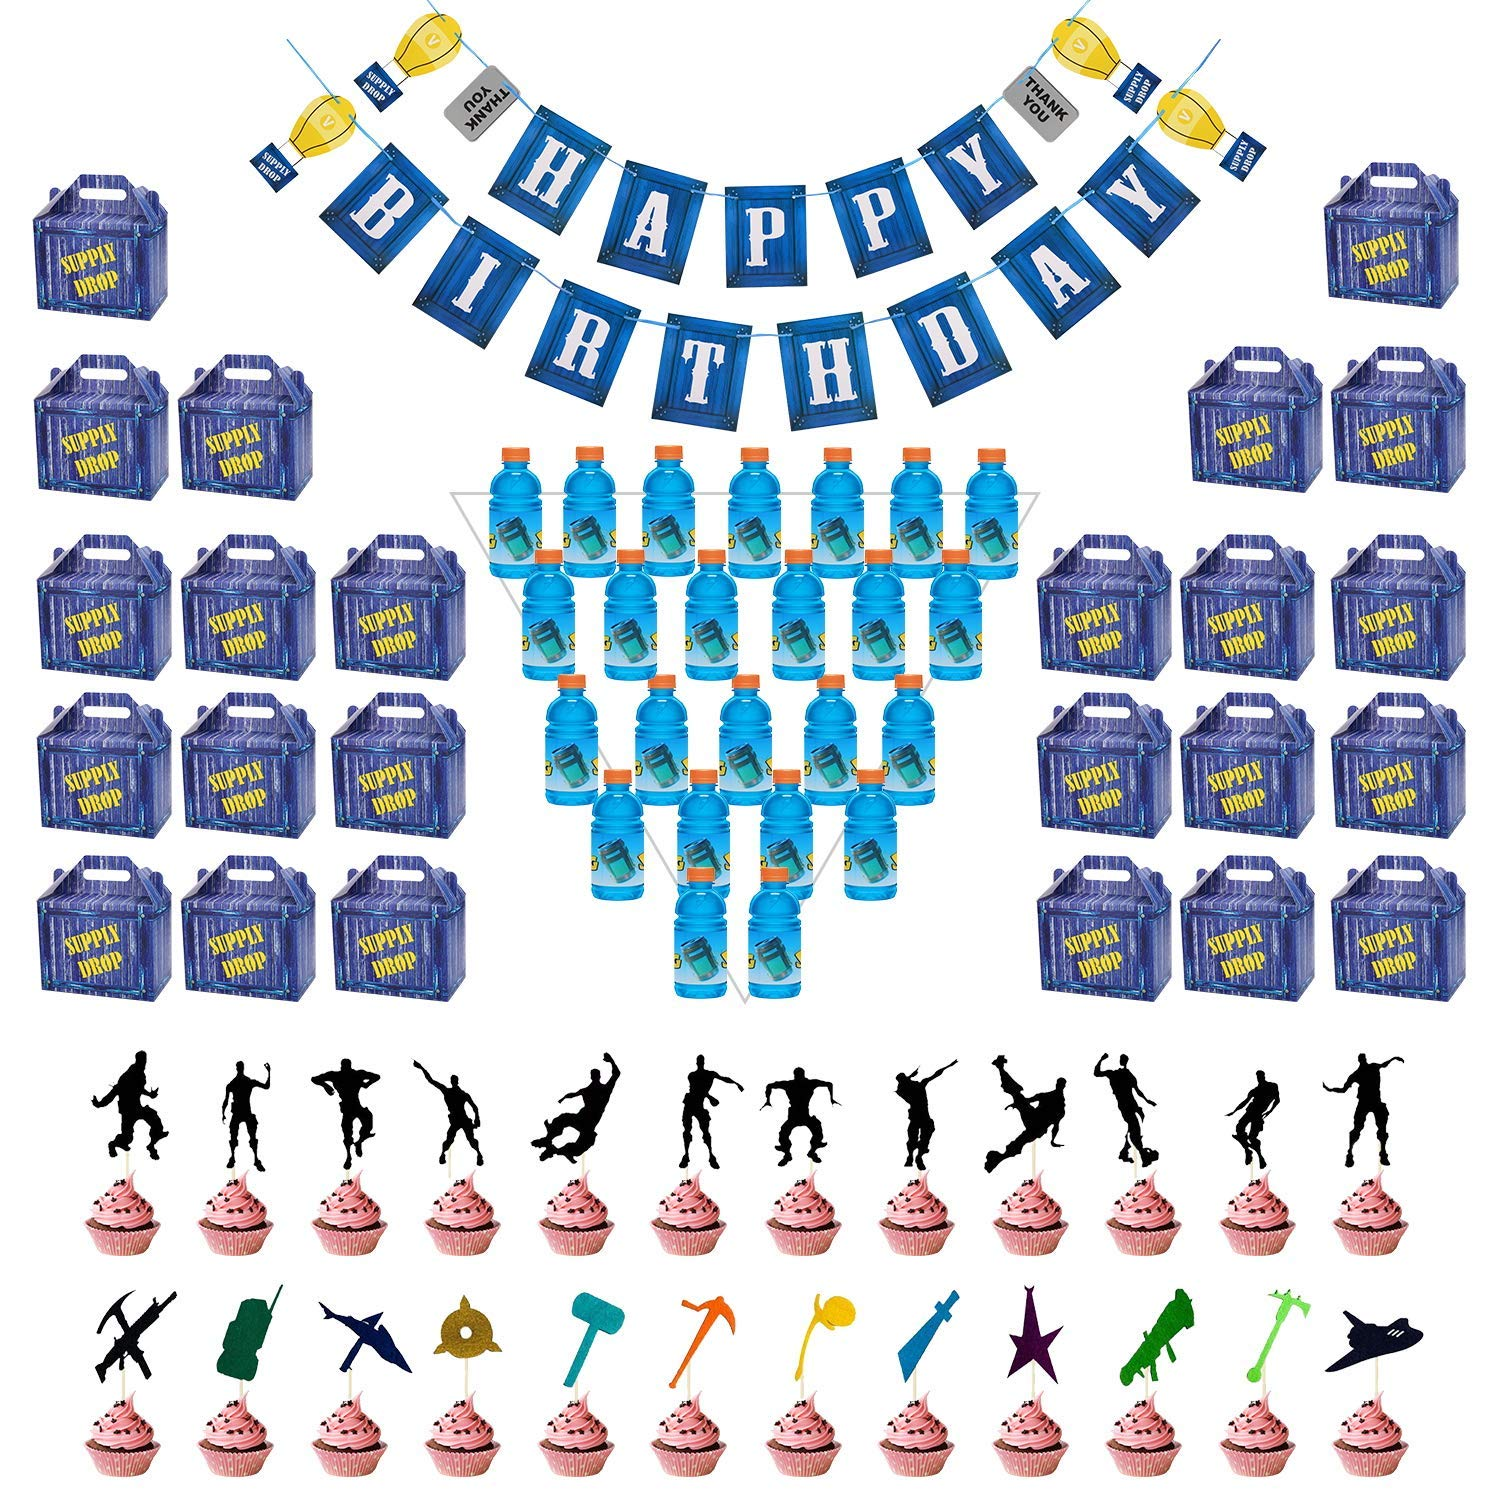 Birthday Party Supplies Set for Game Themed-Including 24 Chug Jug Bottle Labels,24 Game Party Drop Box,24 Cupcake Toppers(24 Styles),1 Birthday Party Banner by Esjay (Image #3)